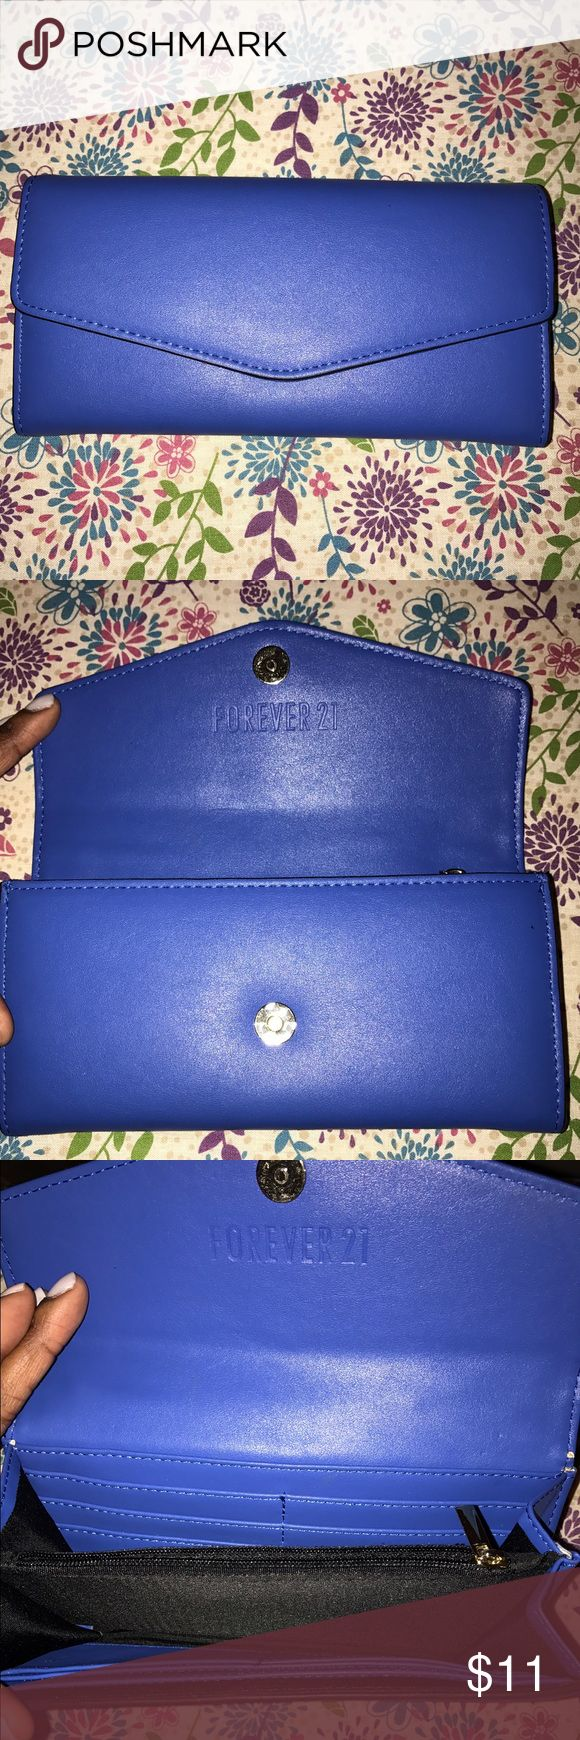 Royal Blue Clutch by Forever 21 Royal Blue Clutch by Forever 21 -- no scratches, in great condition Forever 21 Bags Clutches & Wristlets